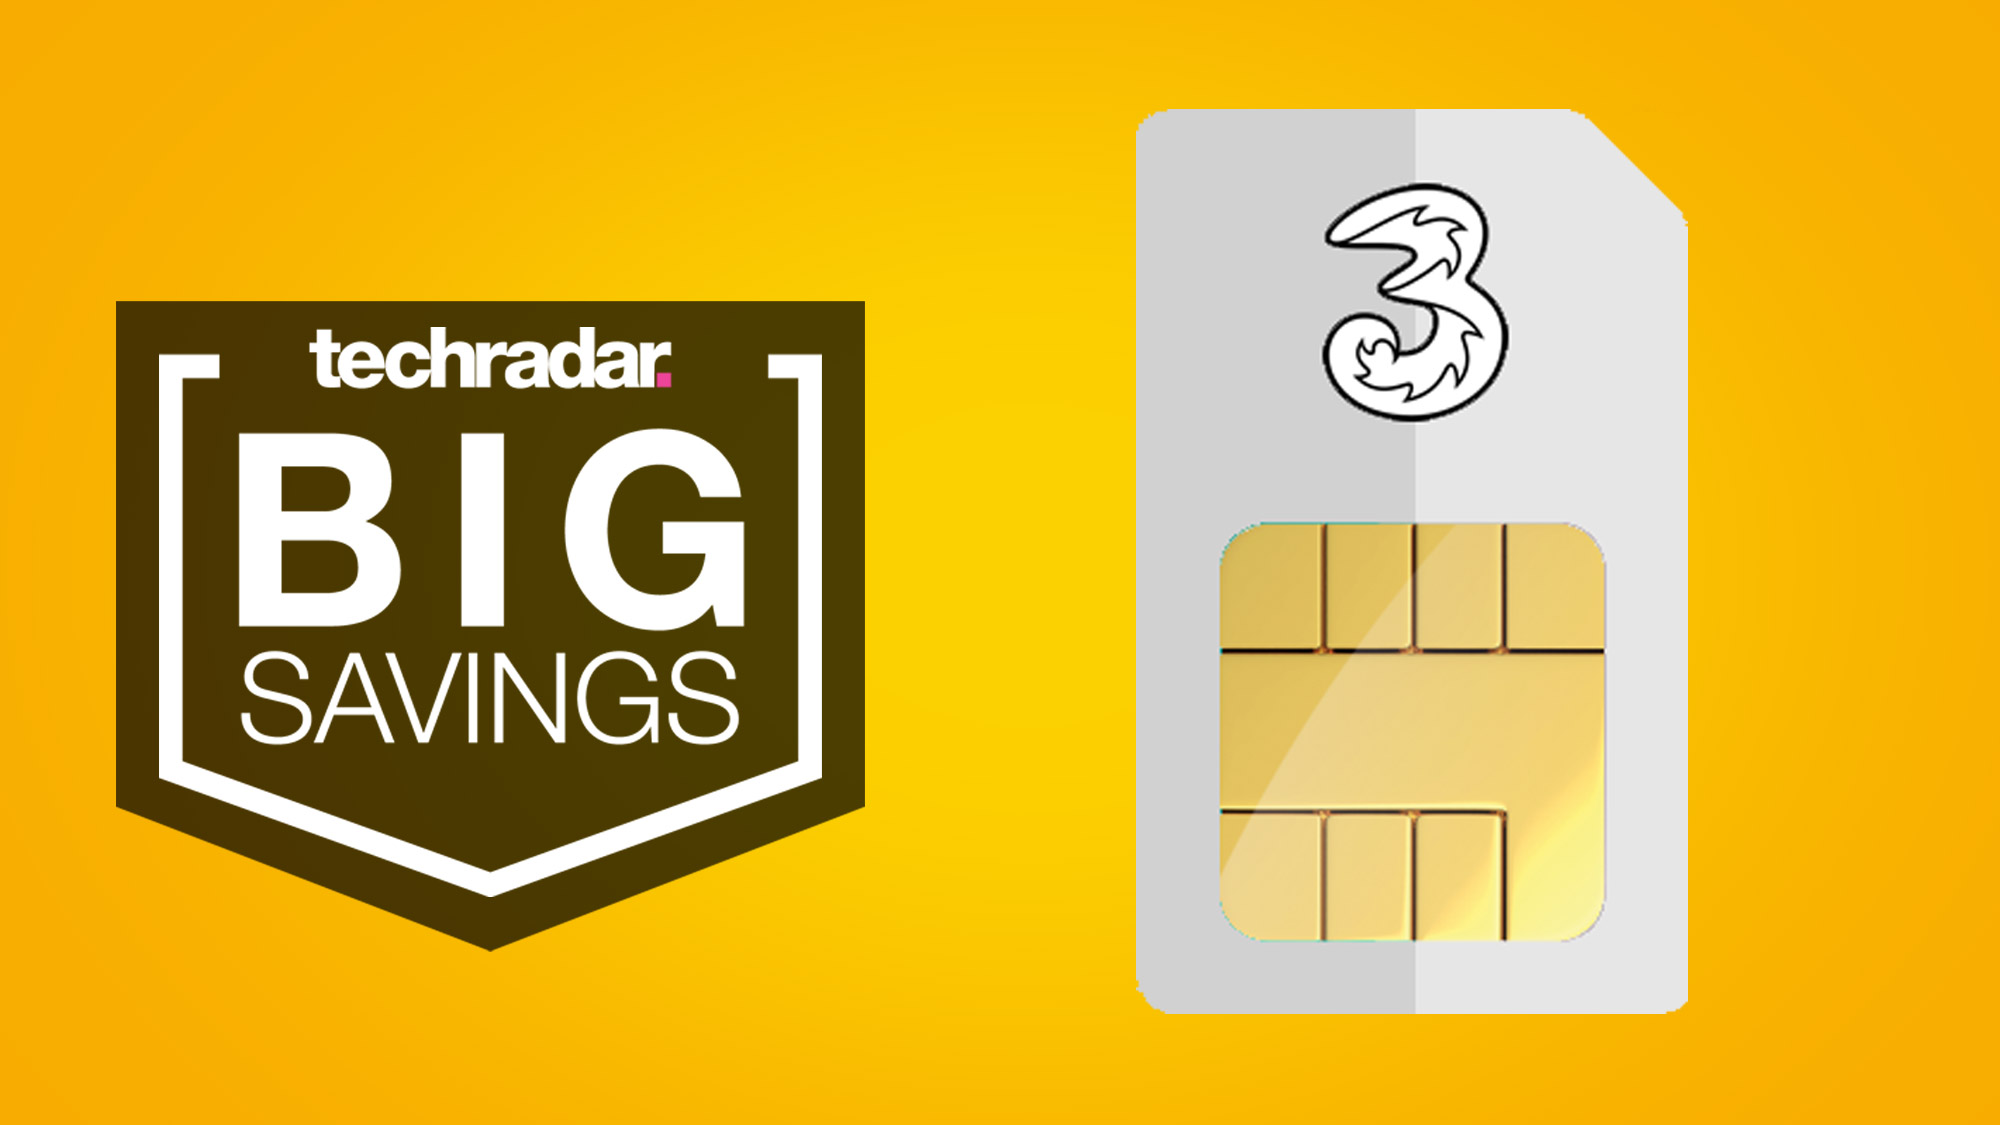 Three is ruling the SIM only deals world with cheap plans and unlimited data bargains thumbnail